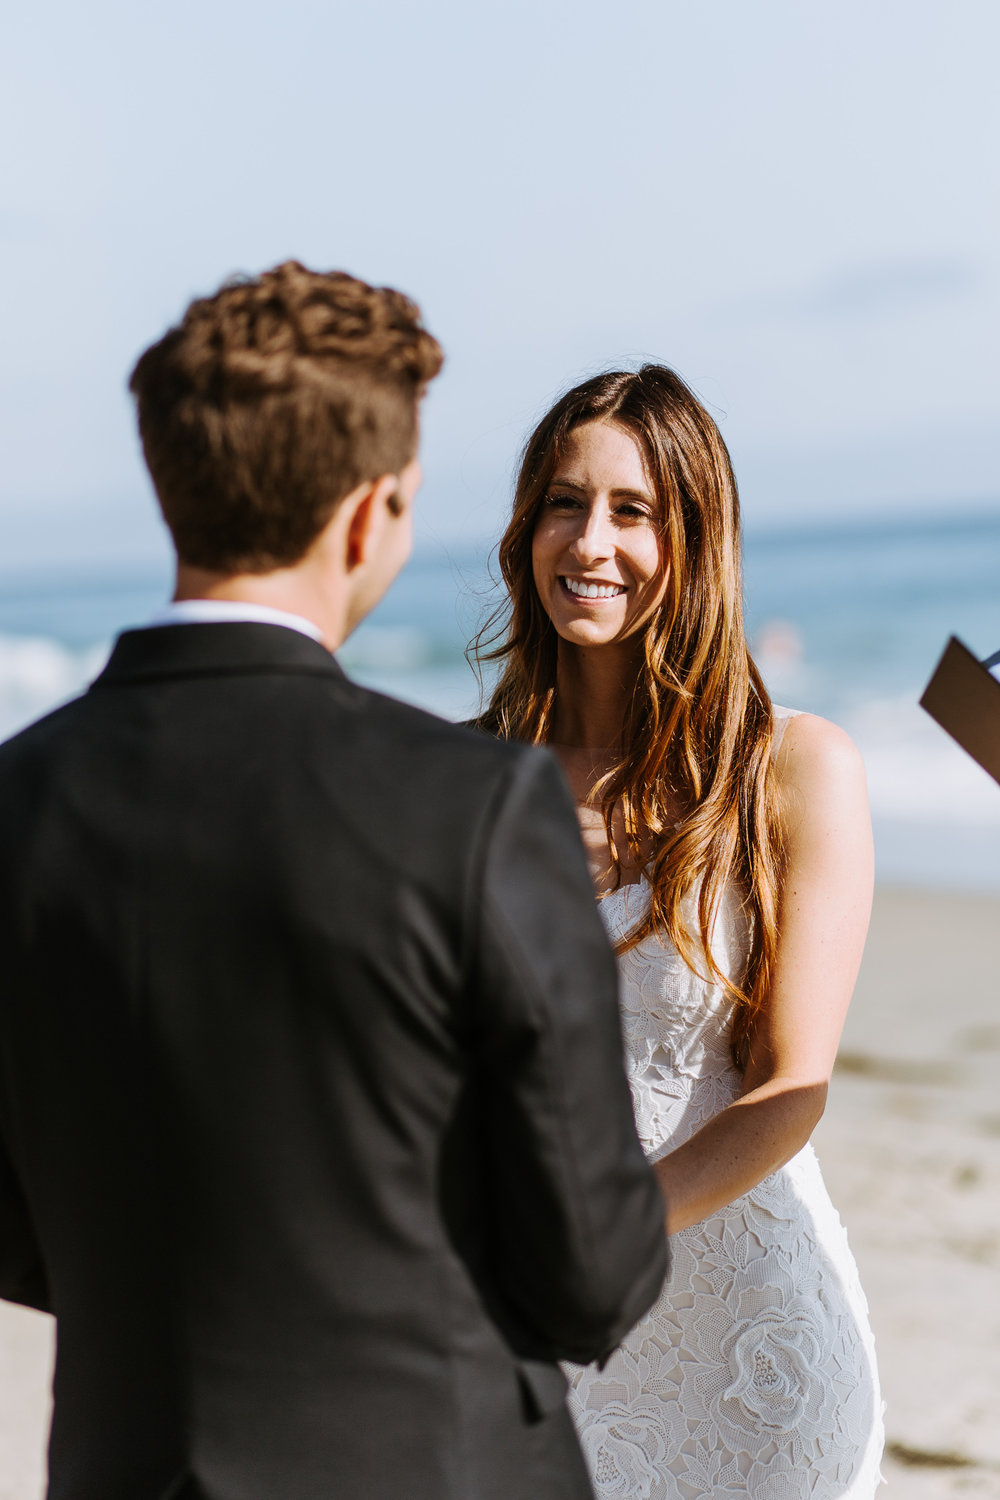 LagunaBeach-WeddingPhotographer-35.jpg